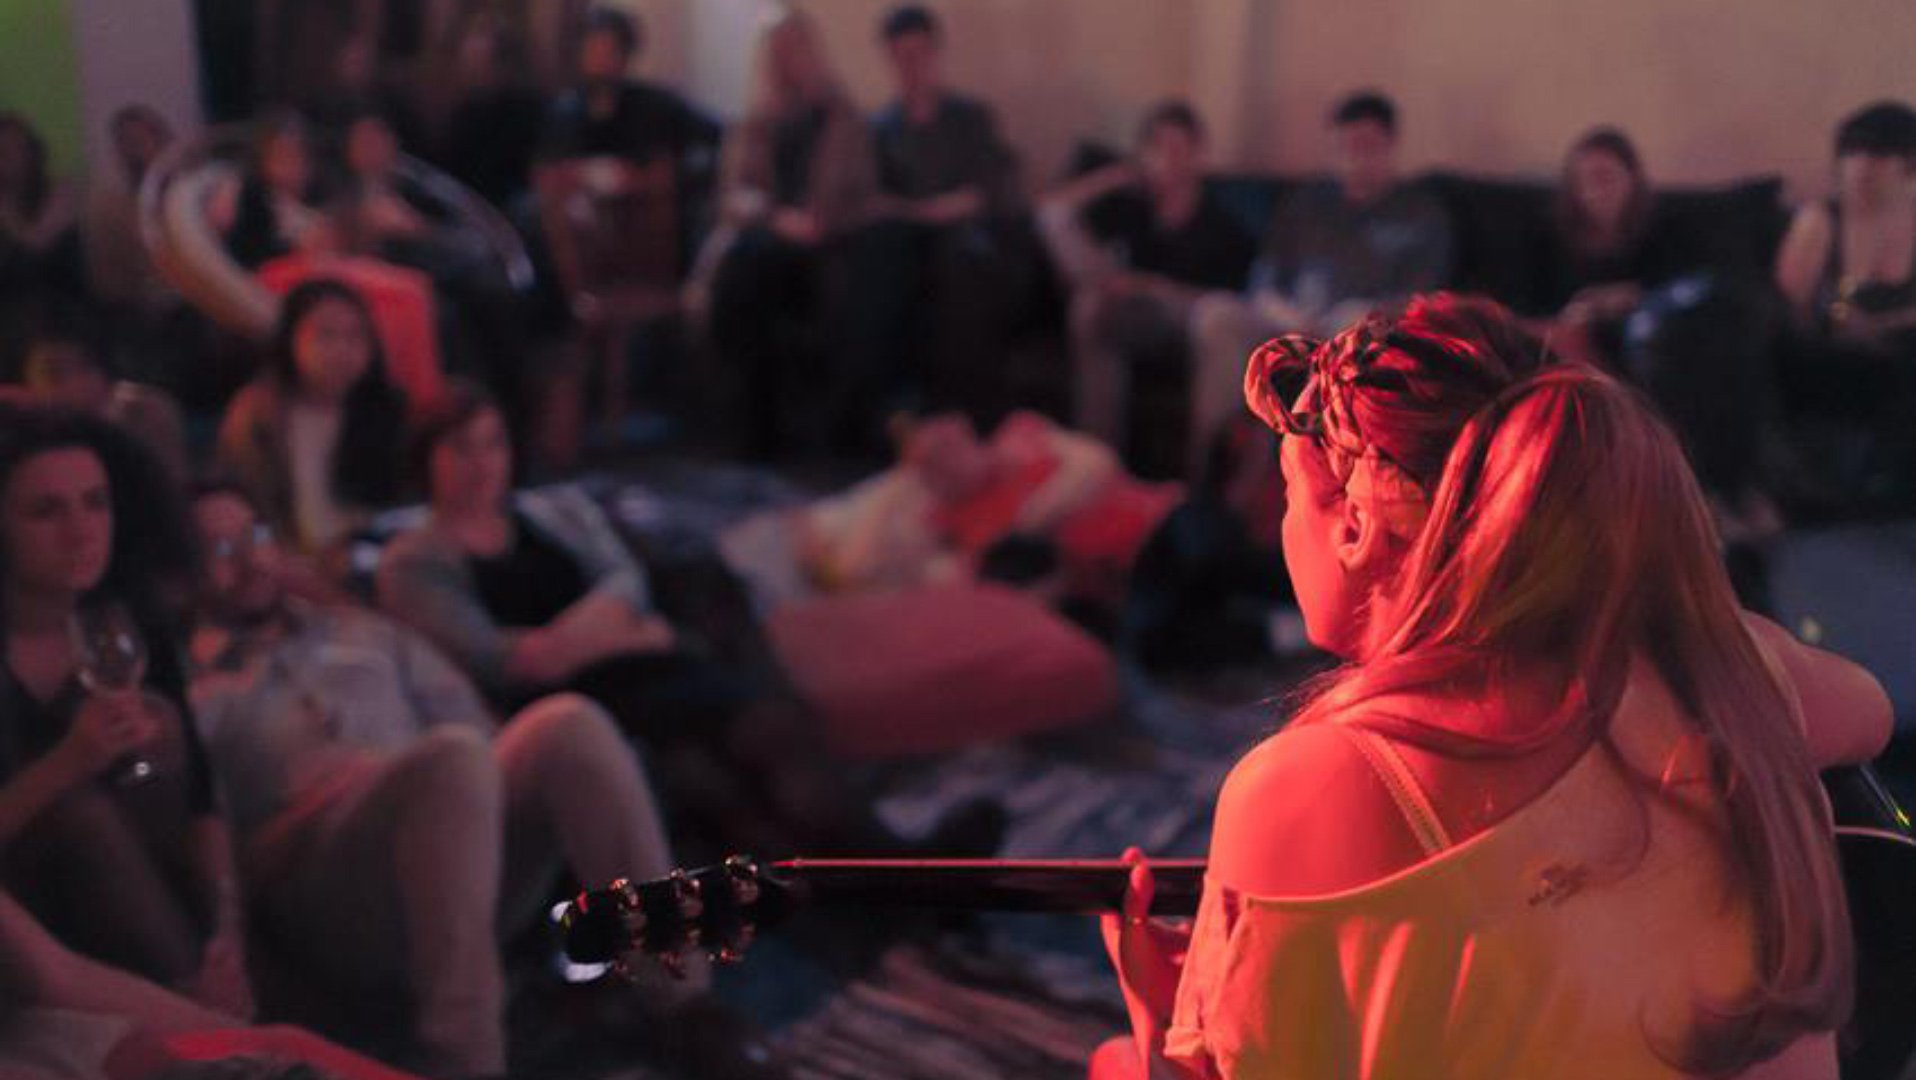 London's eclectic live music night